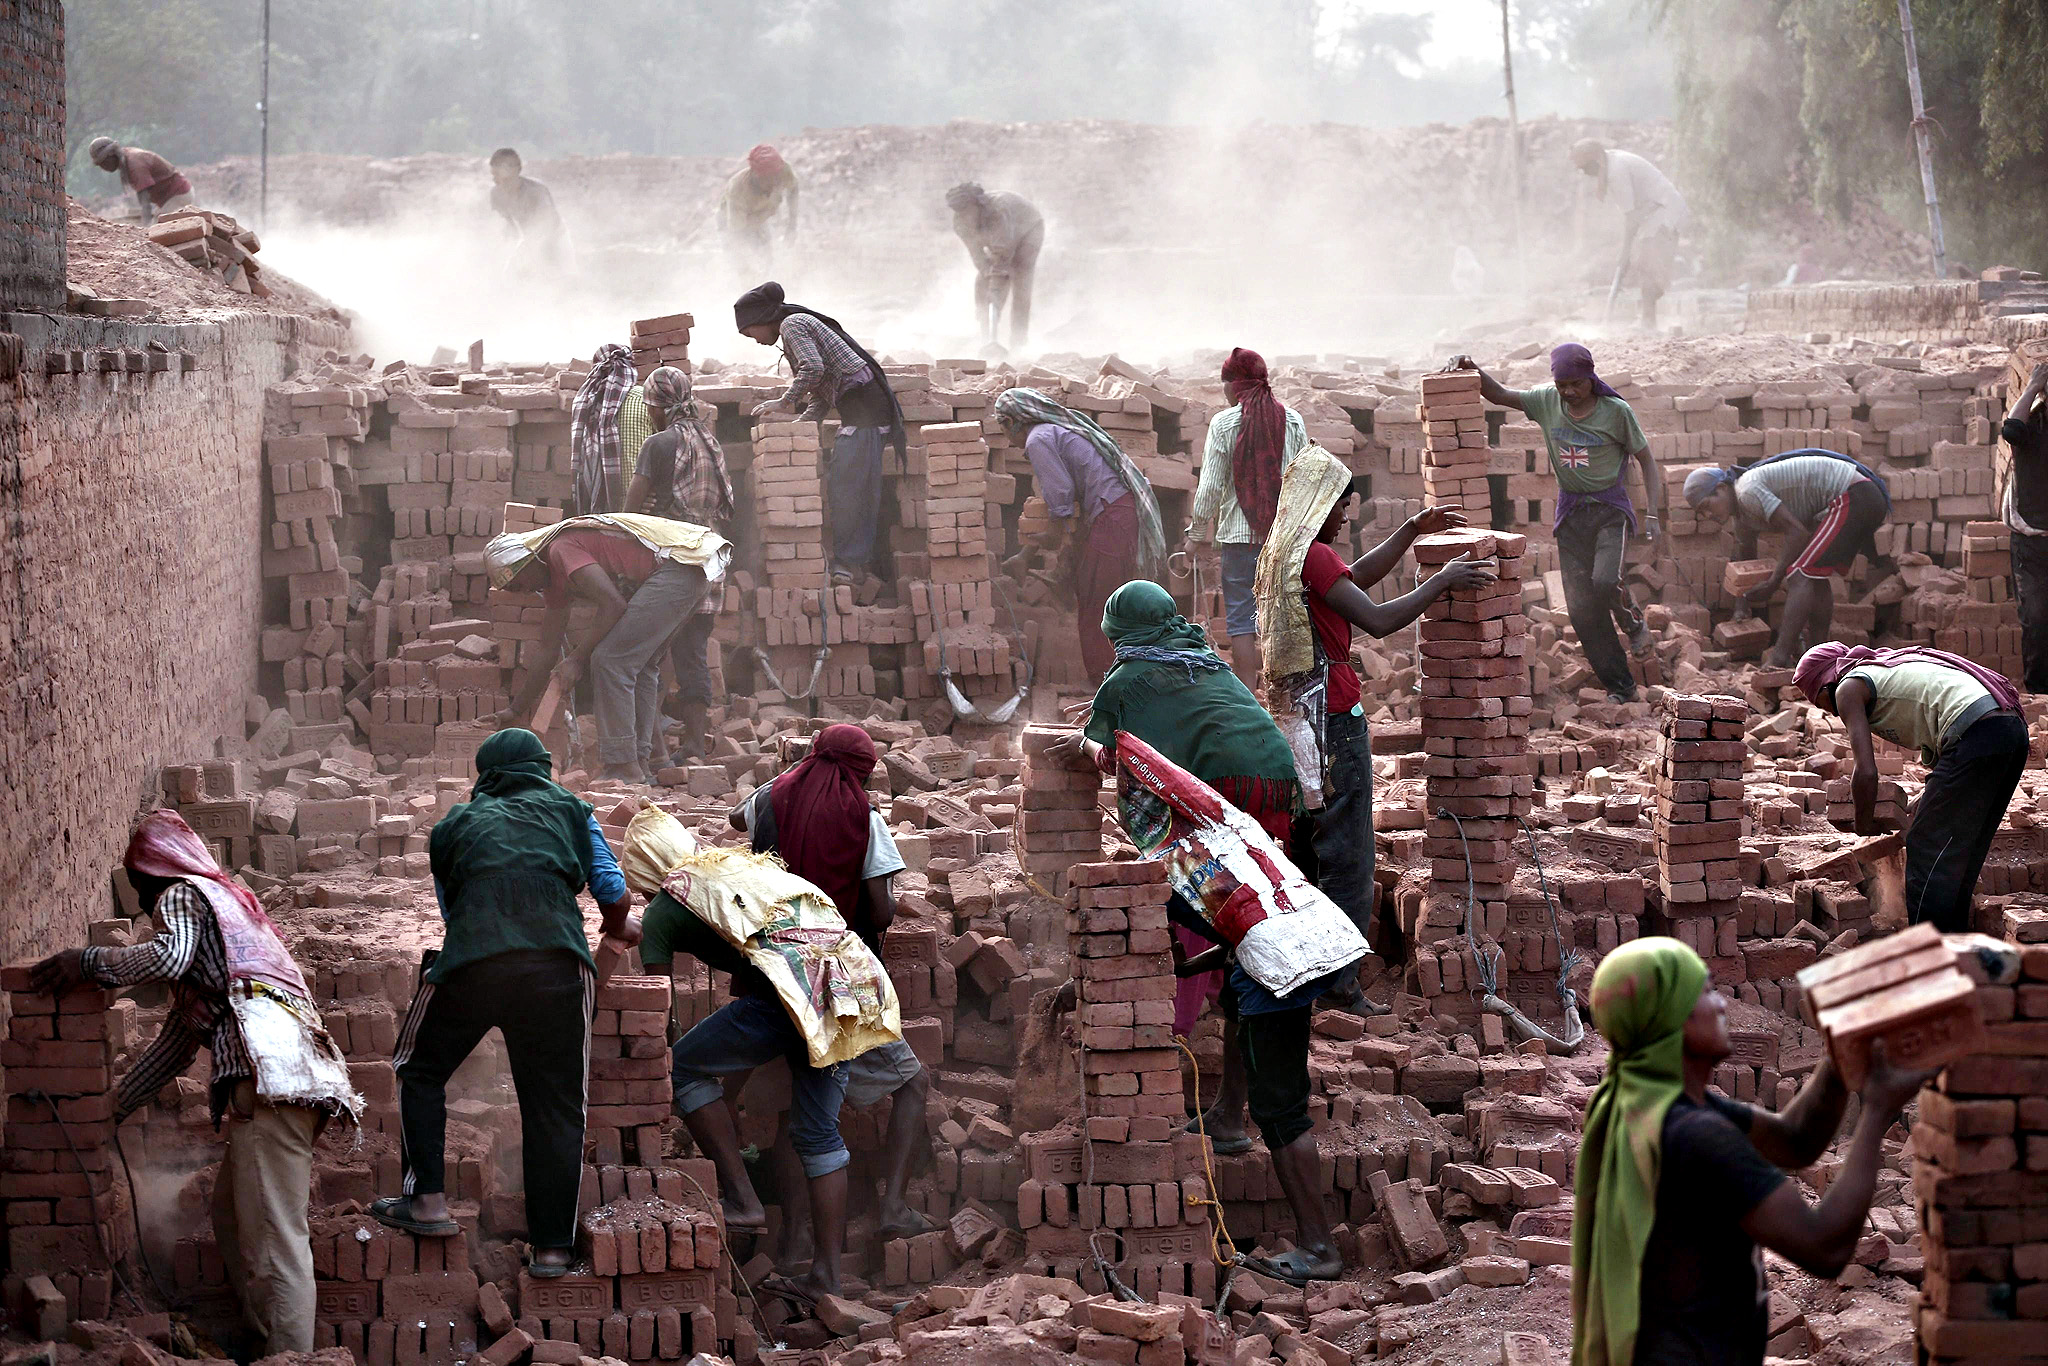 Nepalese laborers work at a brick factory in Bhaktapur, Nepal on Tuesday. Nepal is facing an acute brick crisis after some 40 million houses were damaged and 80 percent of brick kilns were also damaged due to two major earthquakes on 05 April 2015 and 12 May 2015. The official death toll for the 12 May 7.3 magnitude quake rose to 117, authorities said, in addition to the 8,202 victims claimed by the April 25 earthquake.